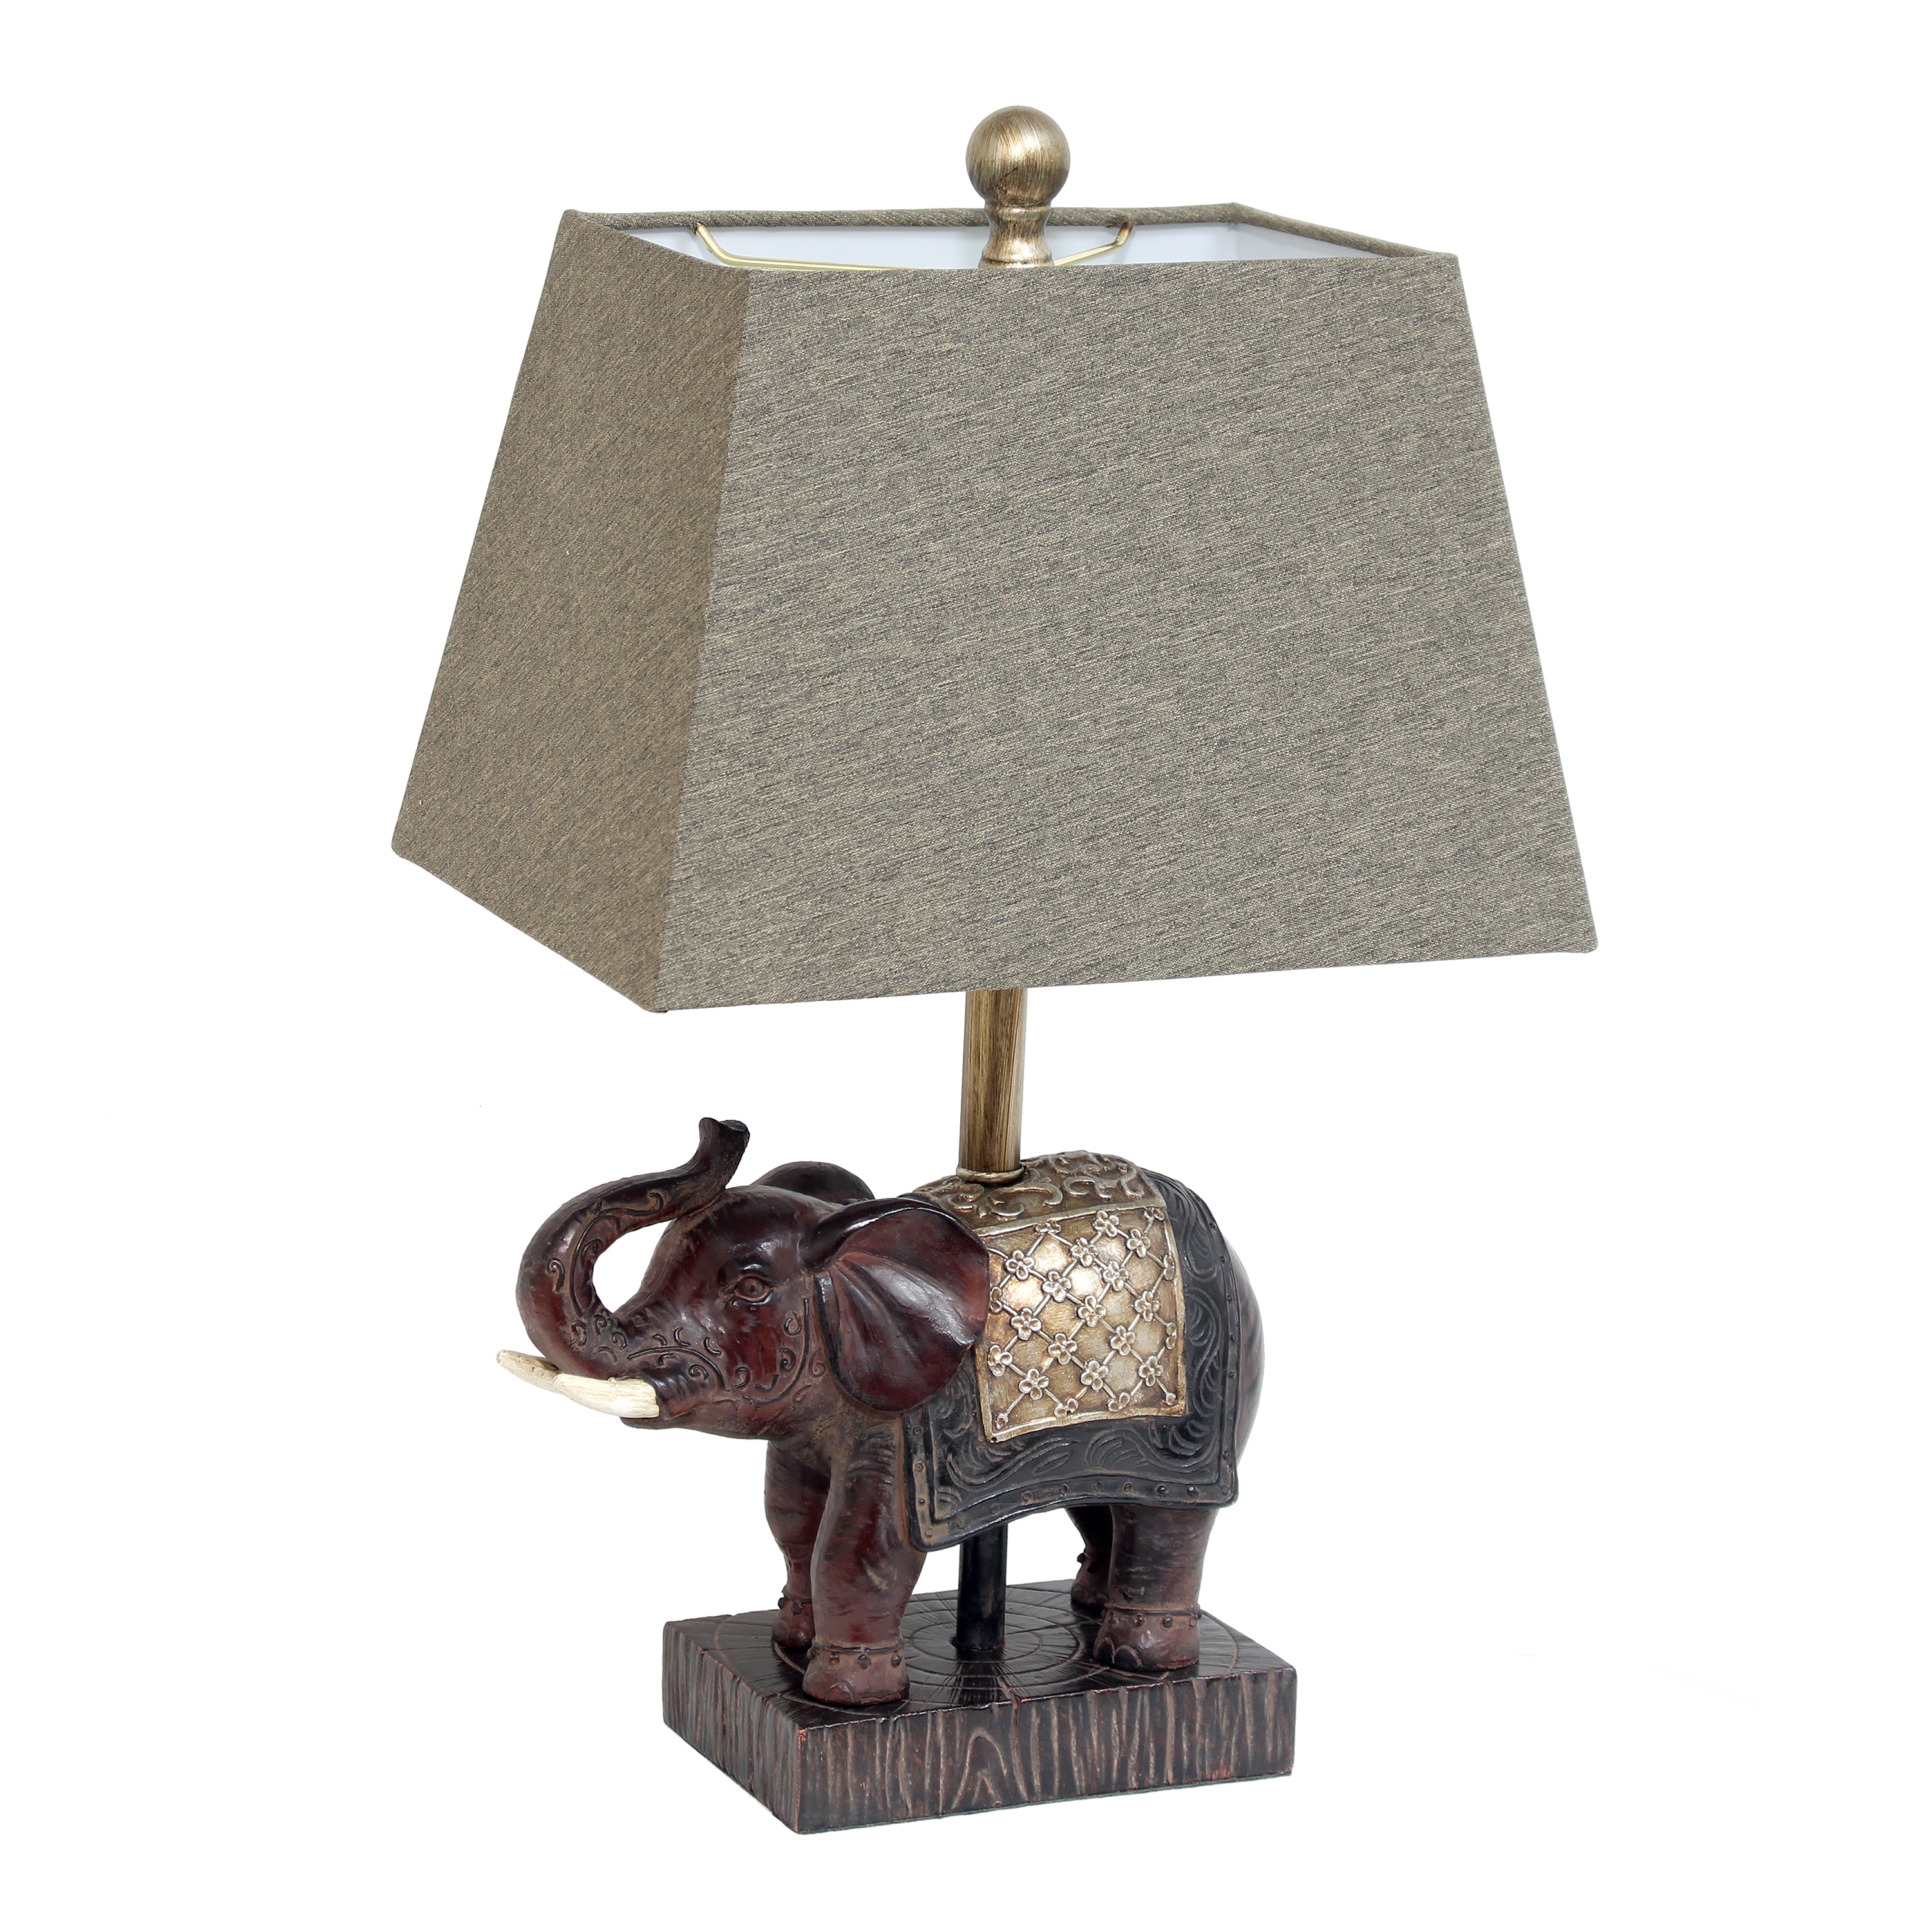 Lalia Home Elephant Table Lamp with Fabric Shade